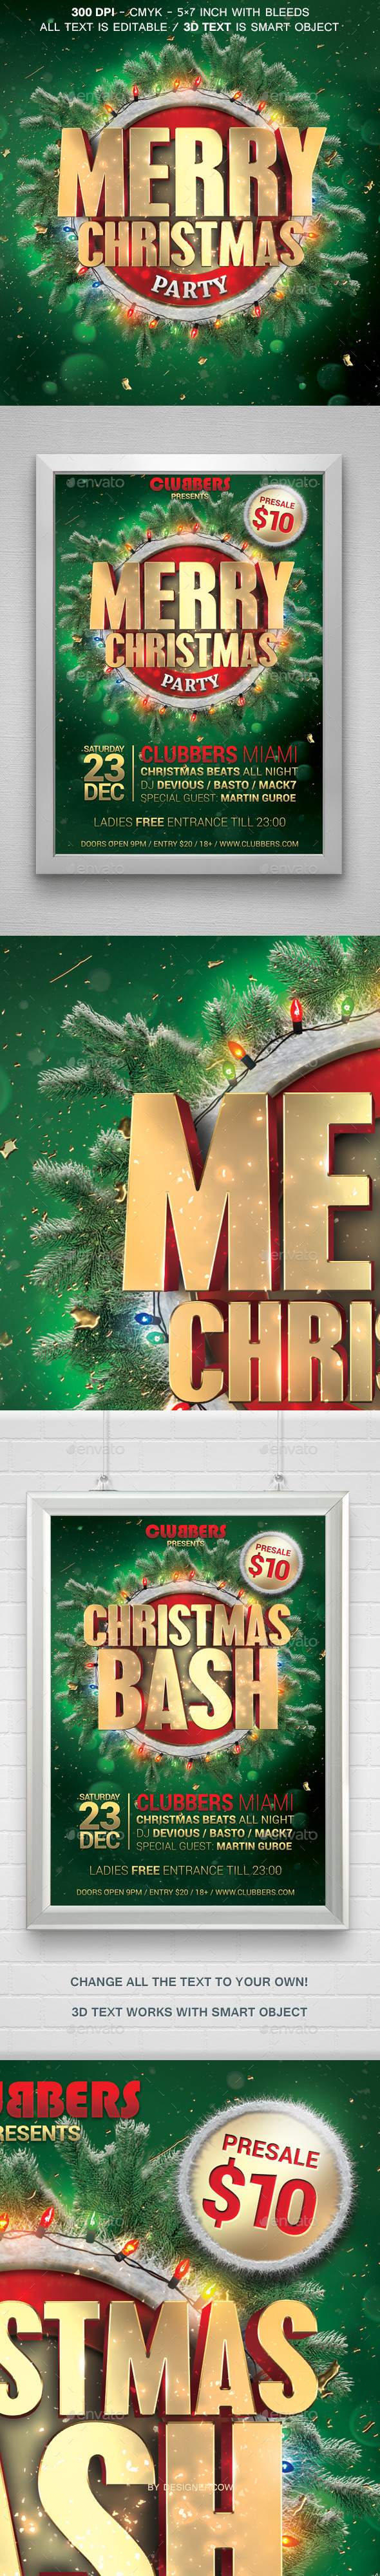 Merry Christmas Party Flyer - Holidays Events